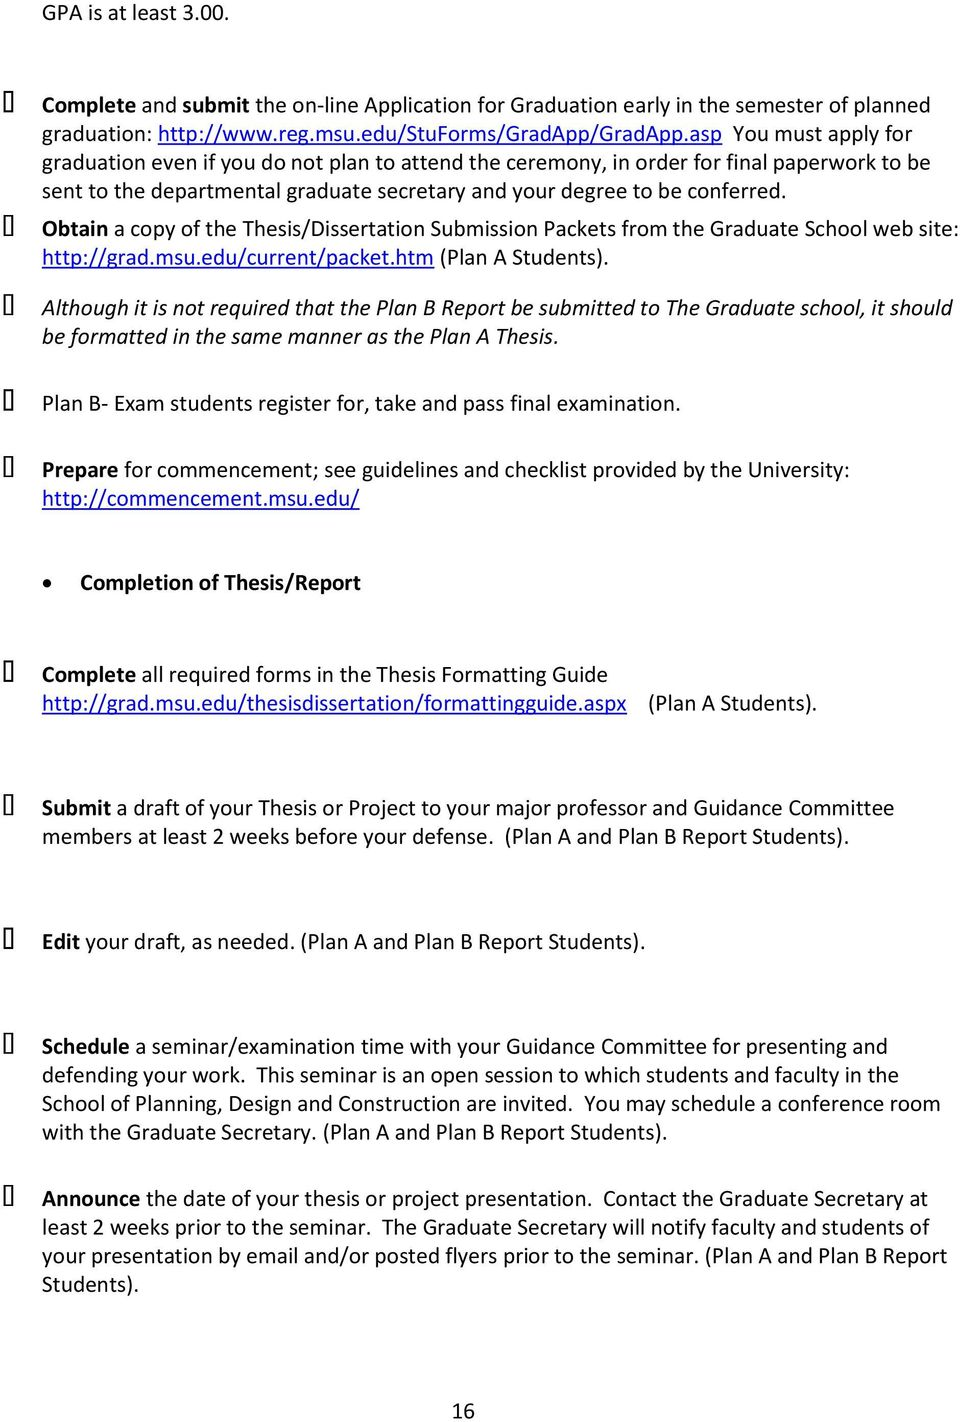 Obtain a copy of the Thesis/Dissertation Submission Packets from the Graduate School web site: http://grad.msu.edu/current/packet.htm (Plan A Students).